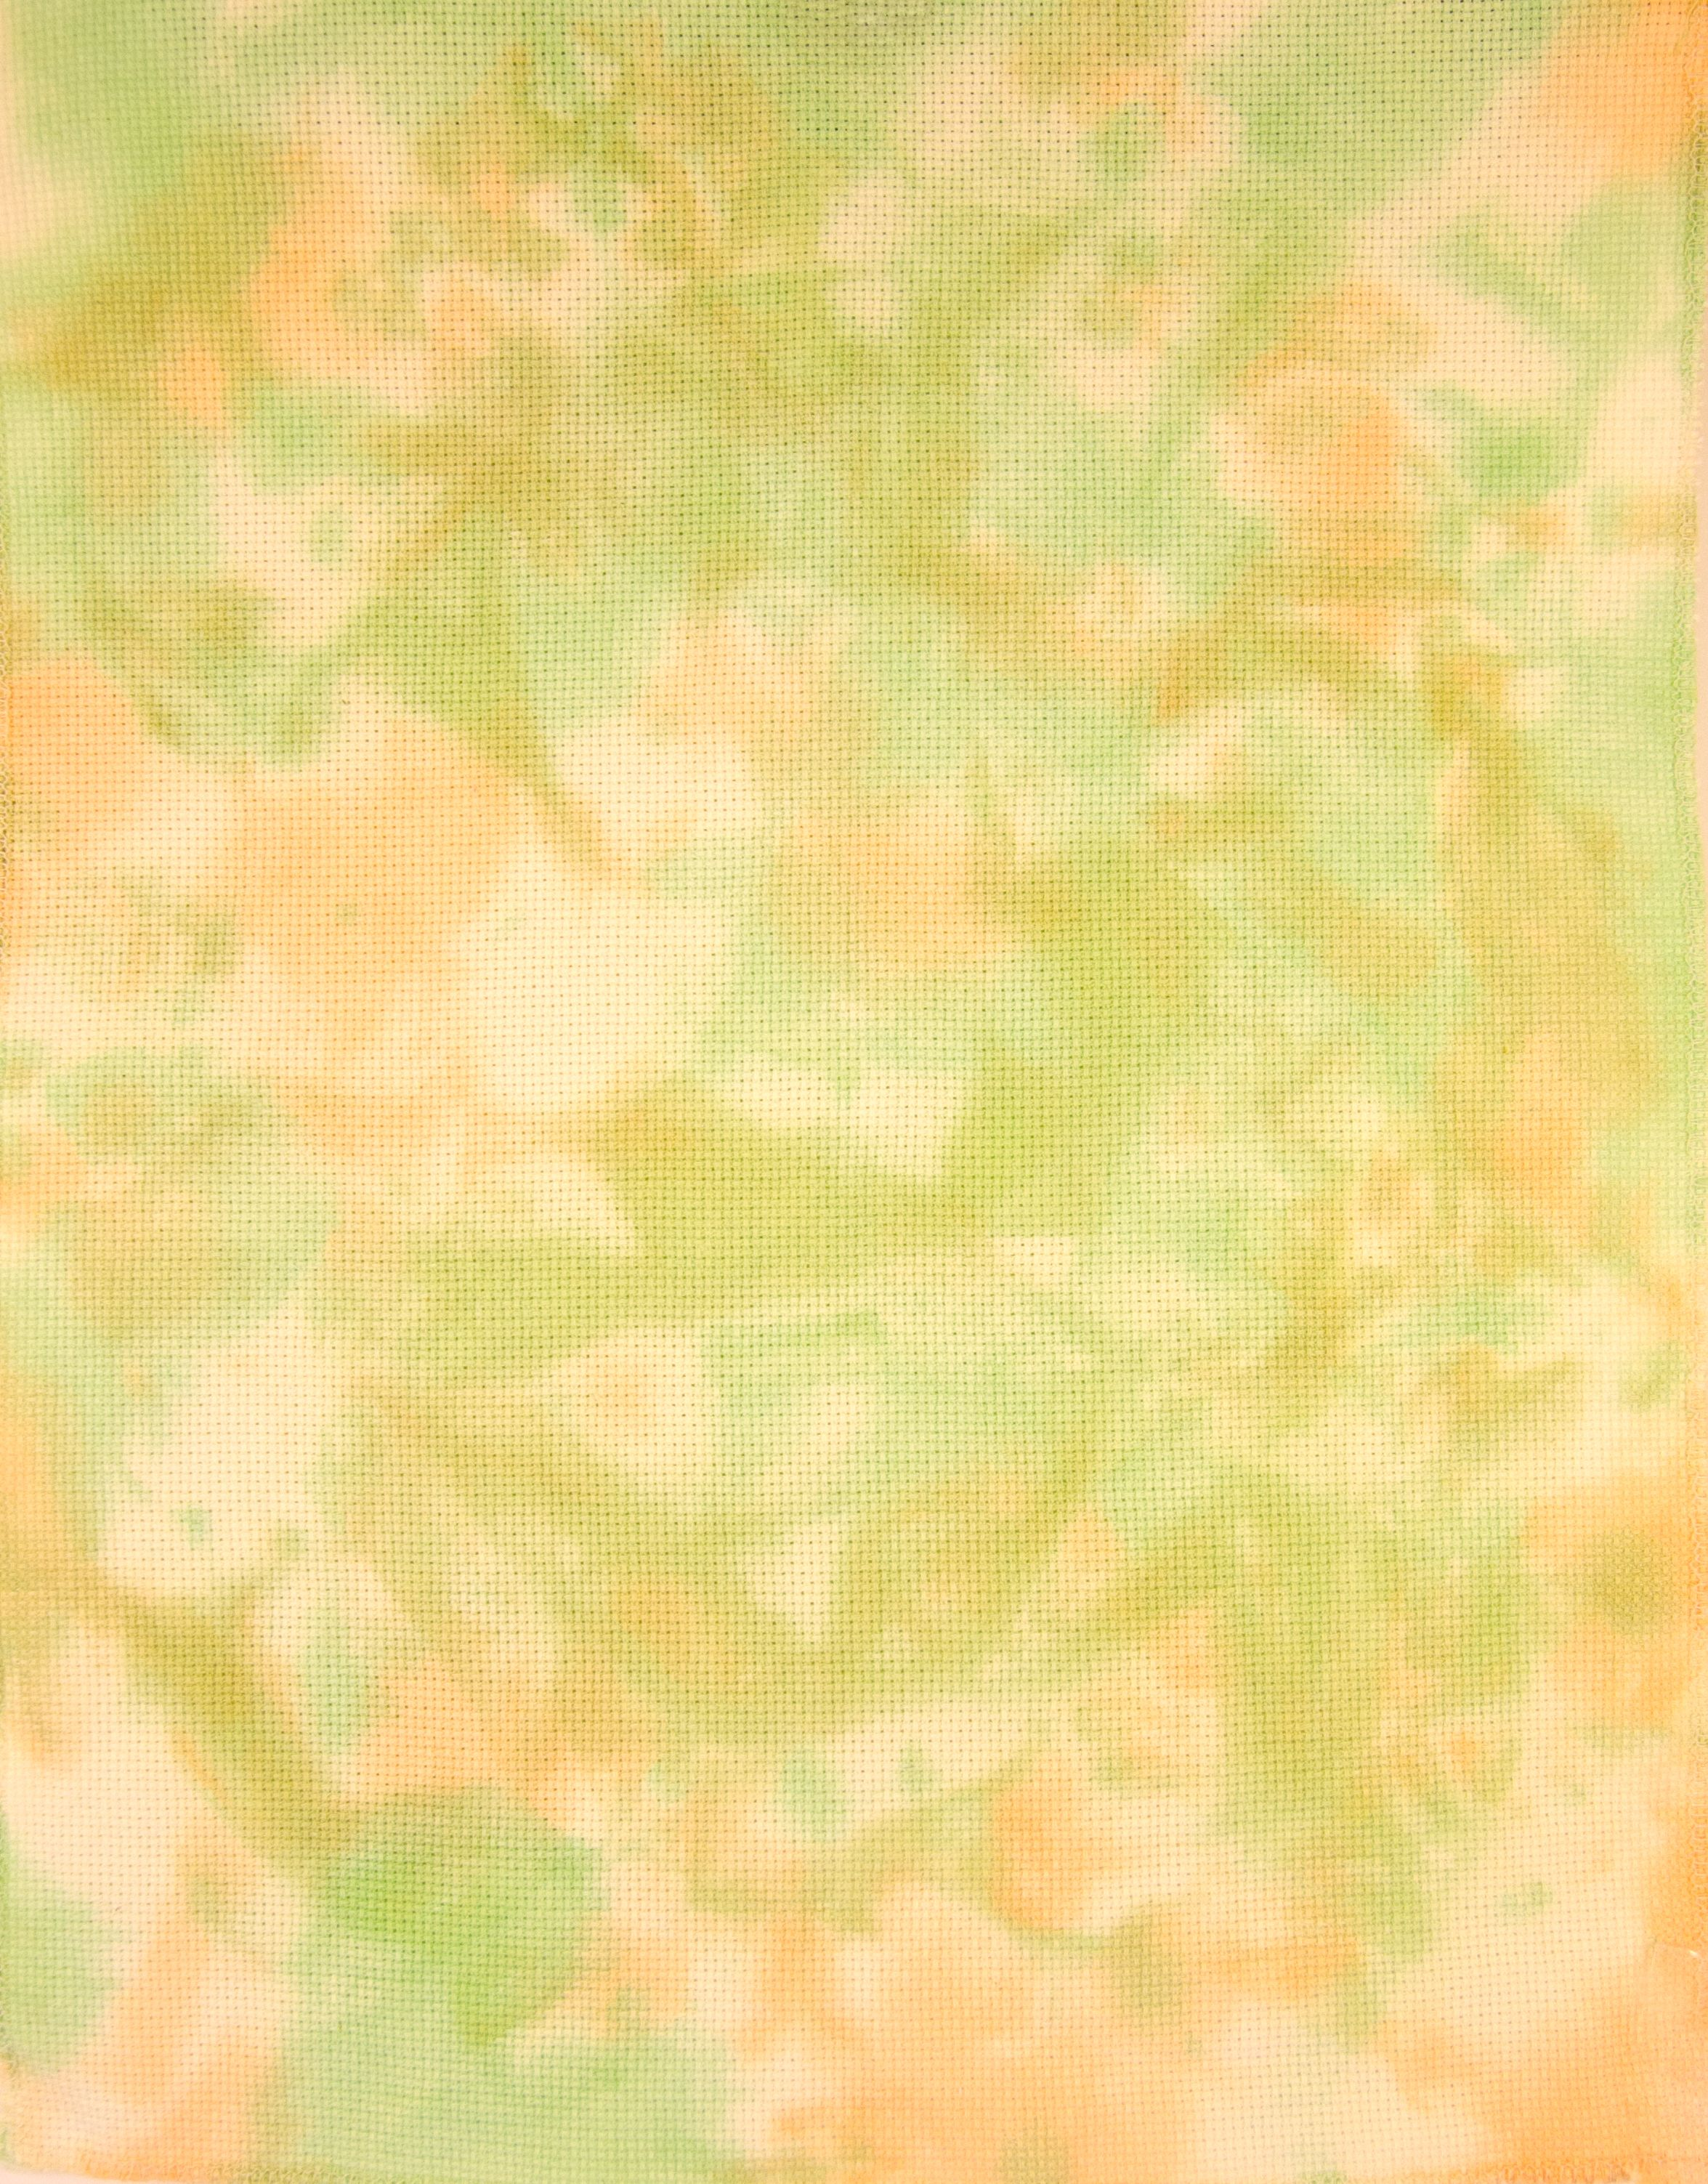 Hand-dyed Cross Stitch Fabric 16 count aida, Item #170 Shades of